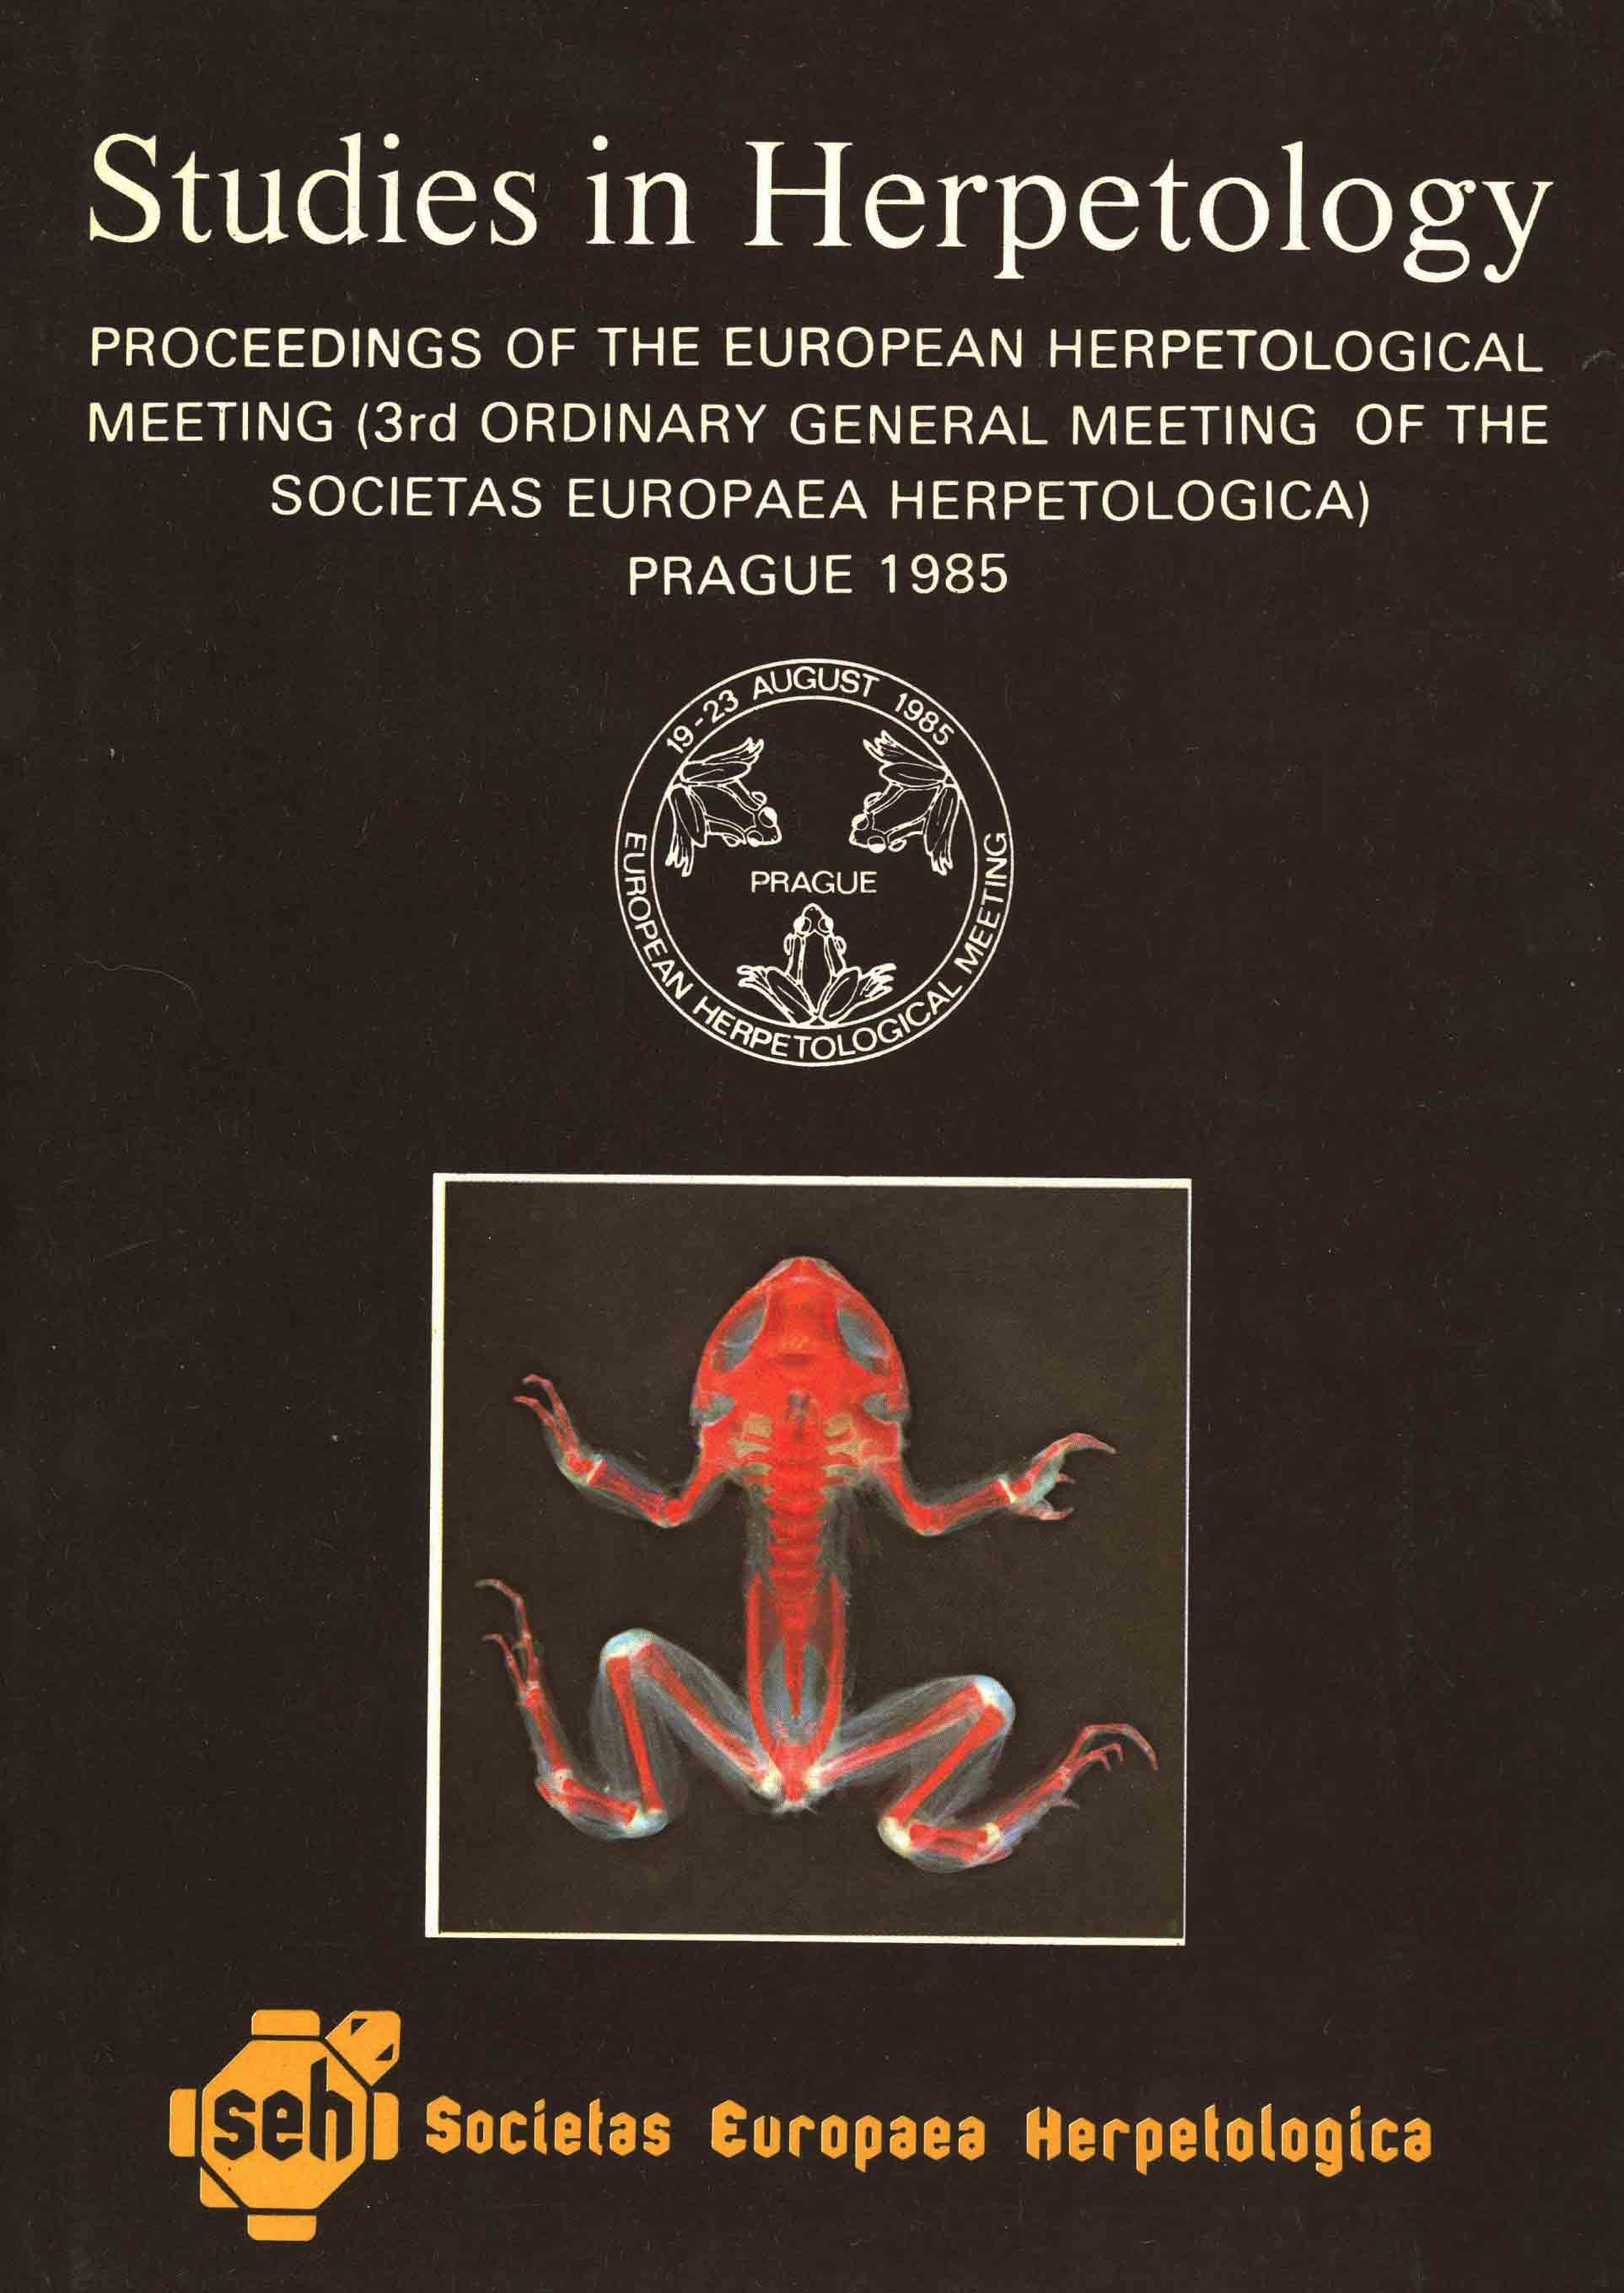 Image for Studies in Herpetology: Proceedings of the European Herpetological Meeting (3rd Ordinary General Meeting of the Societas Europaea Herpetologica) Prague 1985